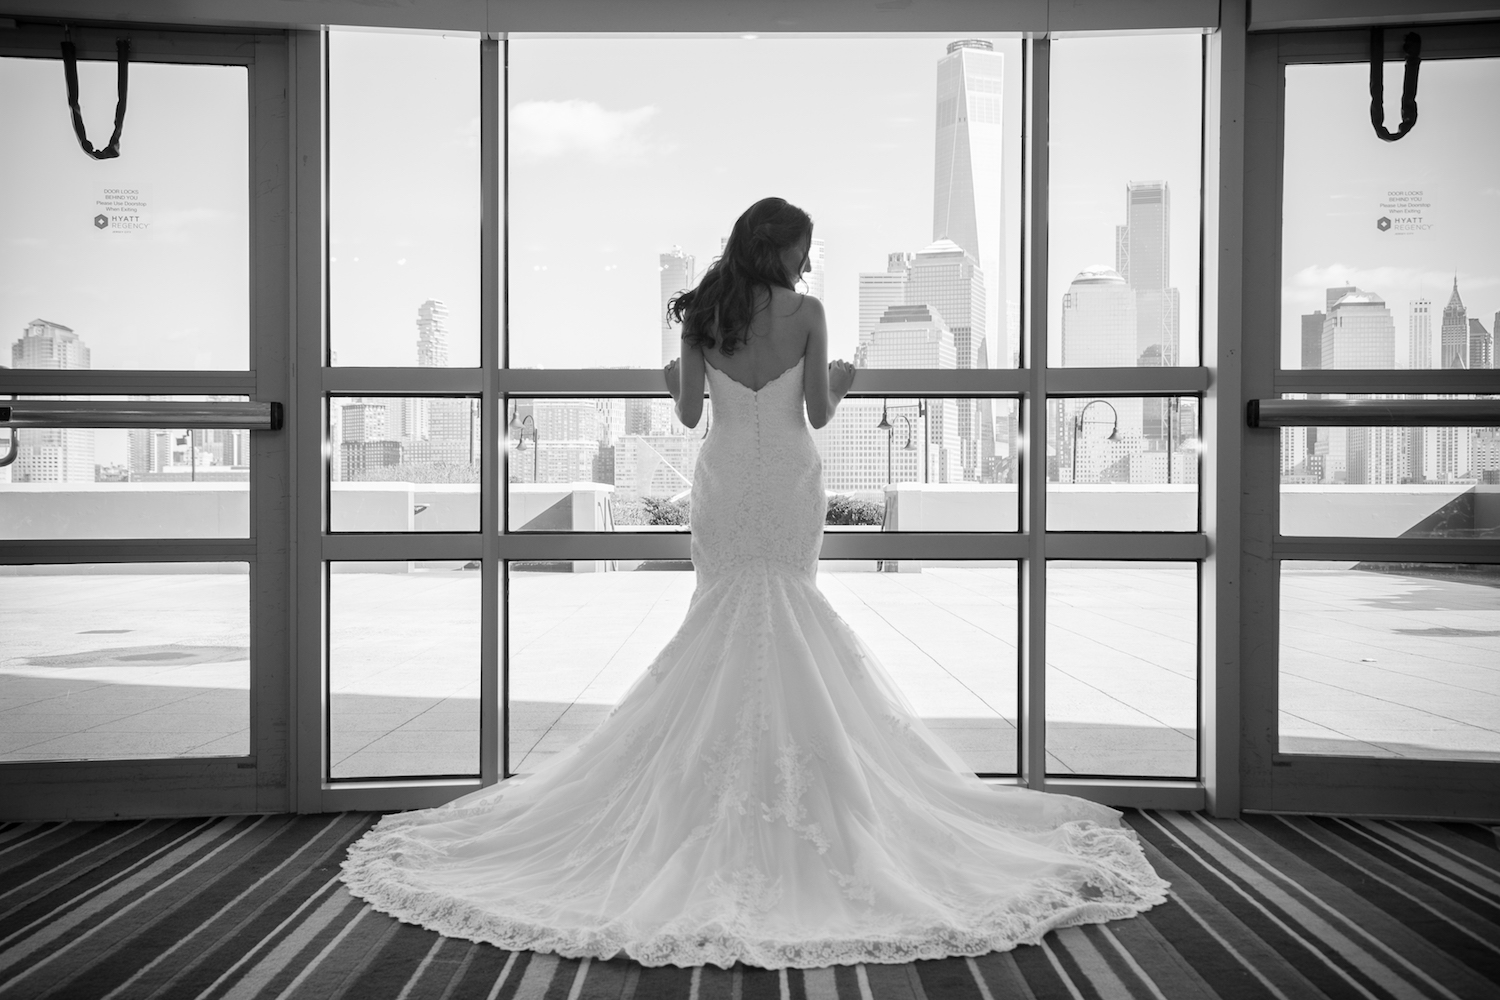 Jacqueline&Cory-standing-at-window-in-dress-wedding-photography-nj